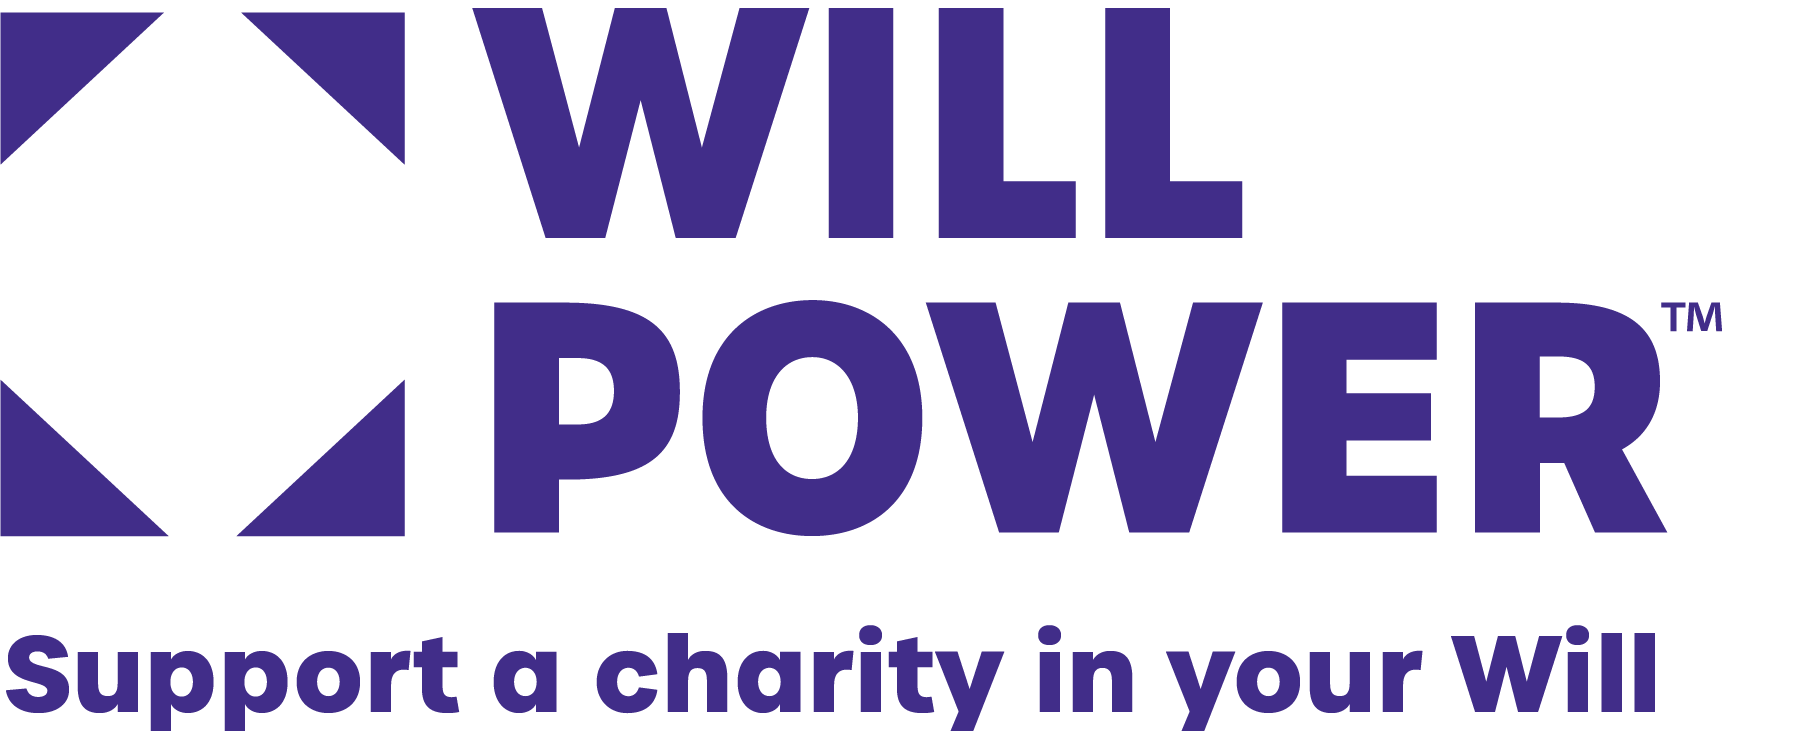 Will Power - giving through your will